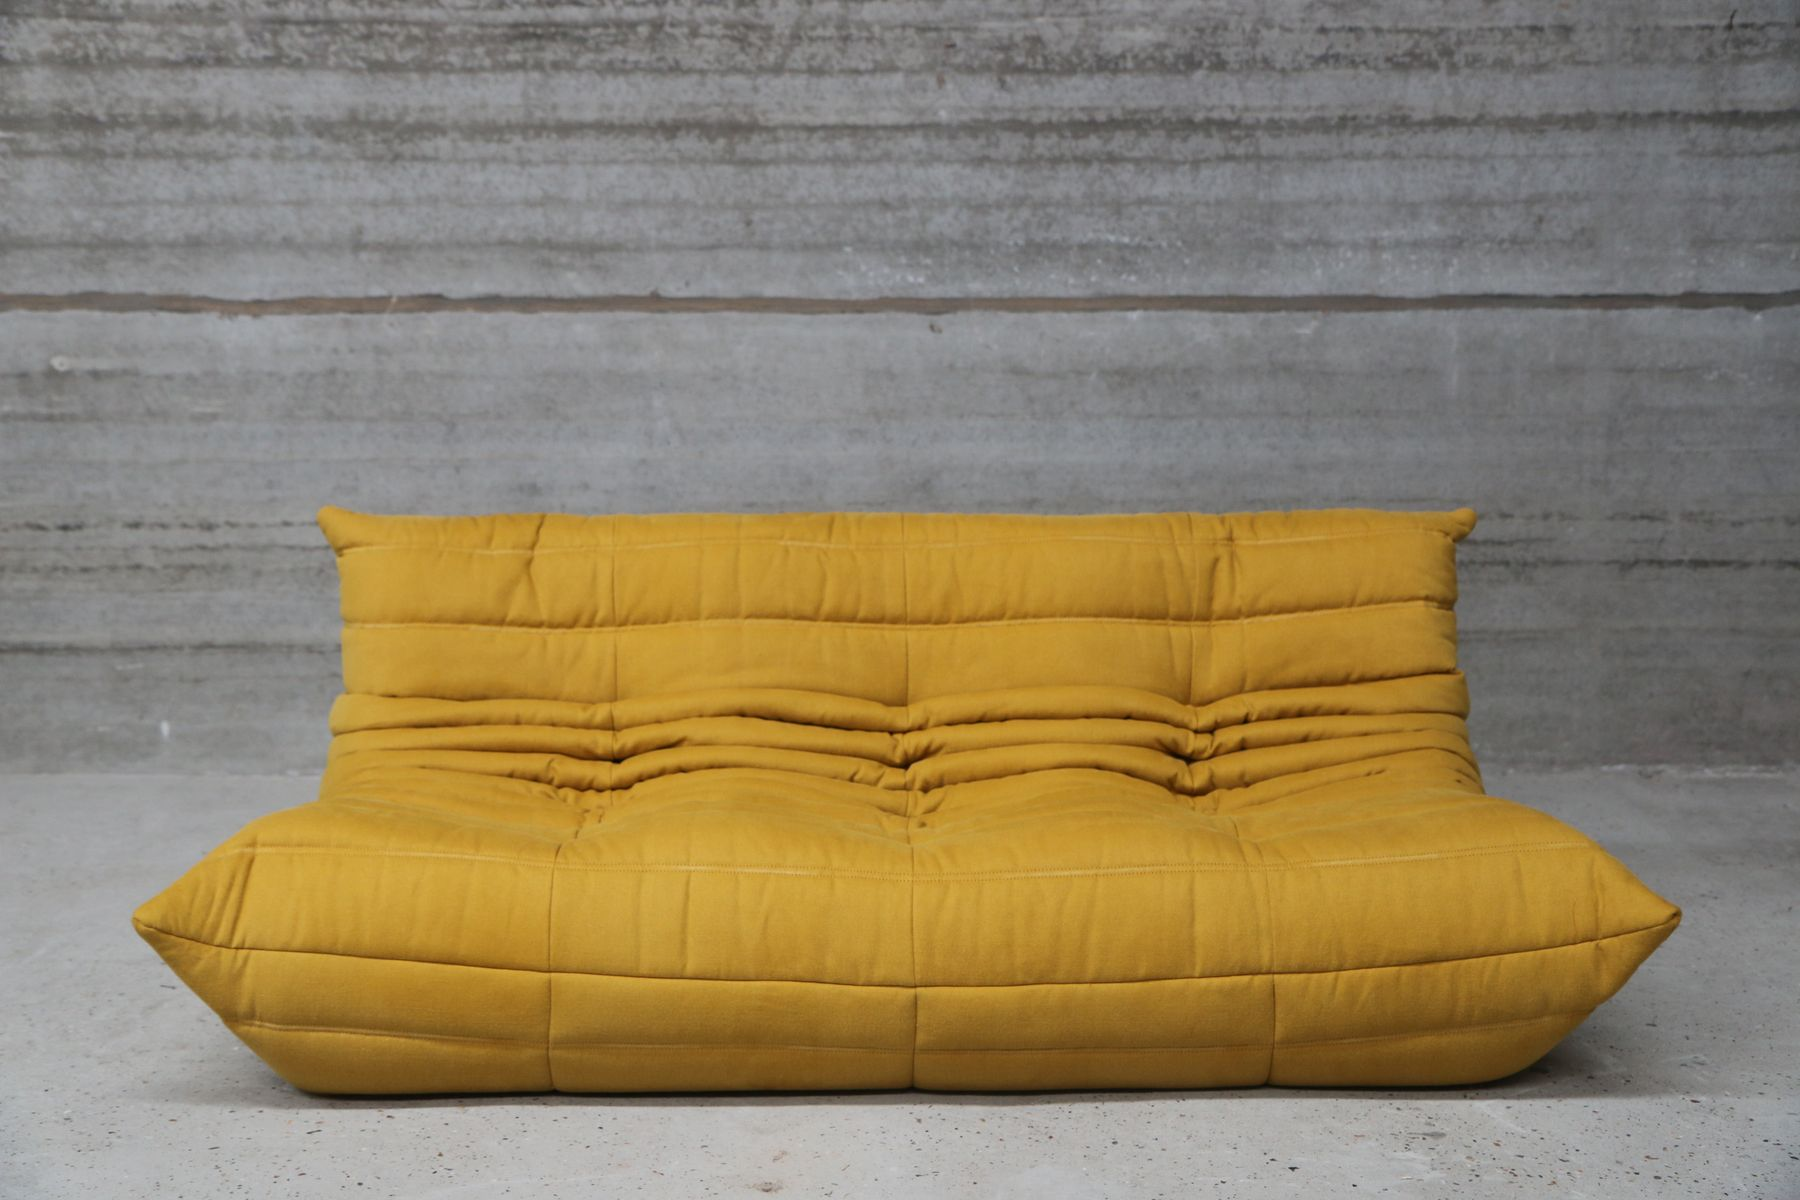 vintage togo 3 seater sofa in yellow fabric by michel ducaroy for ligne roset en vente sur pamono. Black Bedroom Furniture Sets. Home Design Ideas